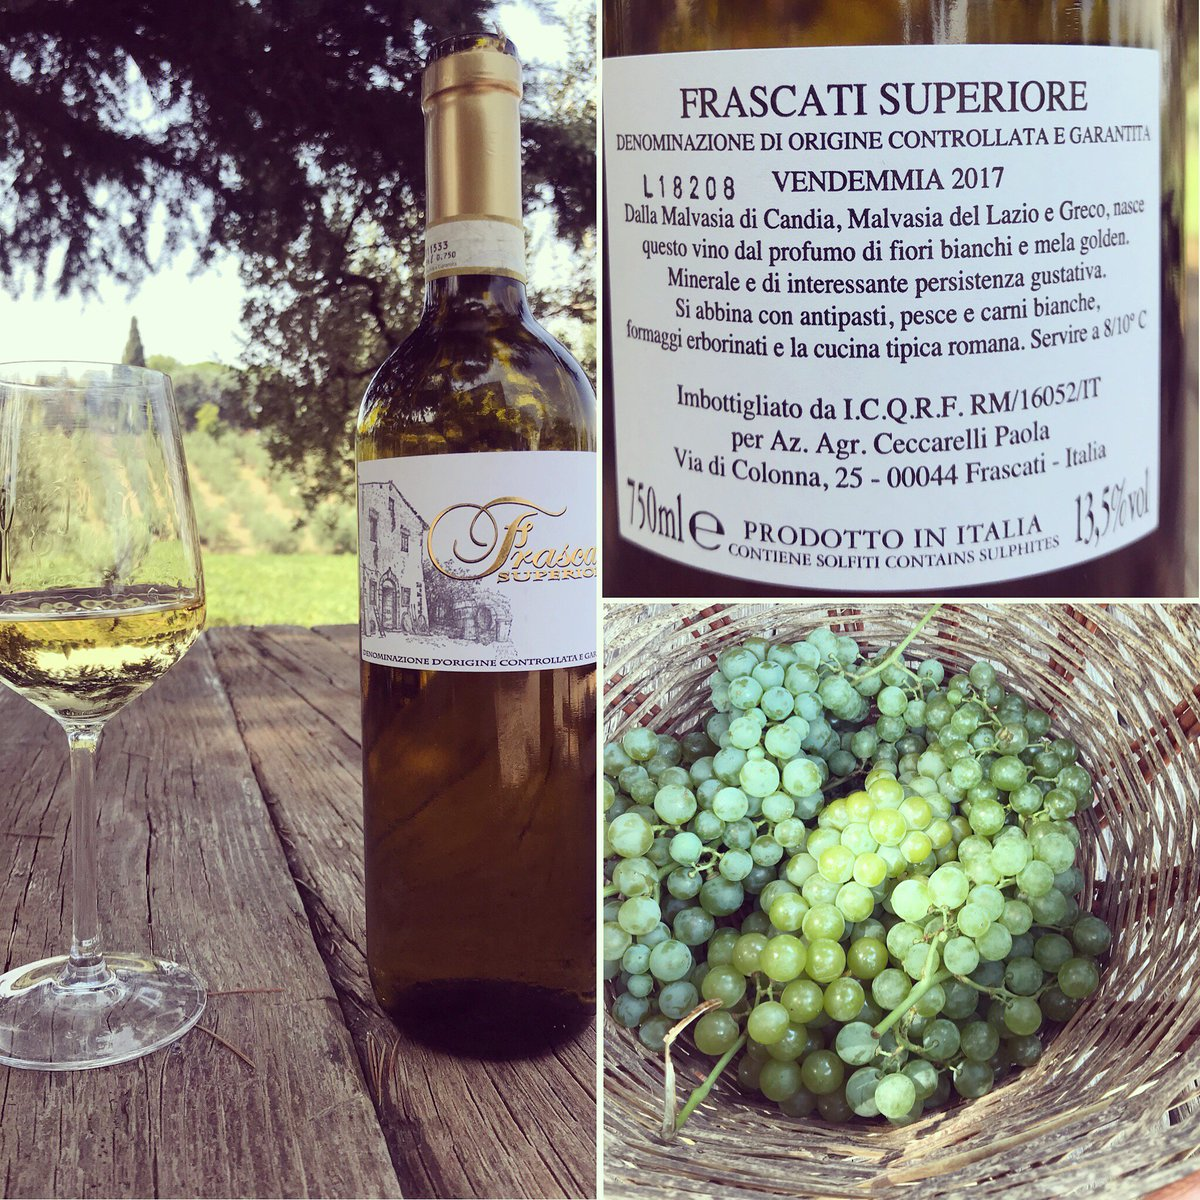 Fiori Bianchi Vino.Old Frascati On Twitter Our 2017 Frascati Superiore Is Here